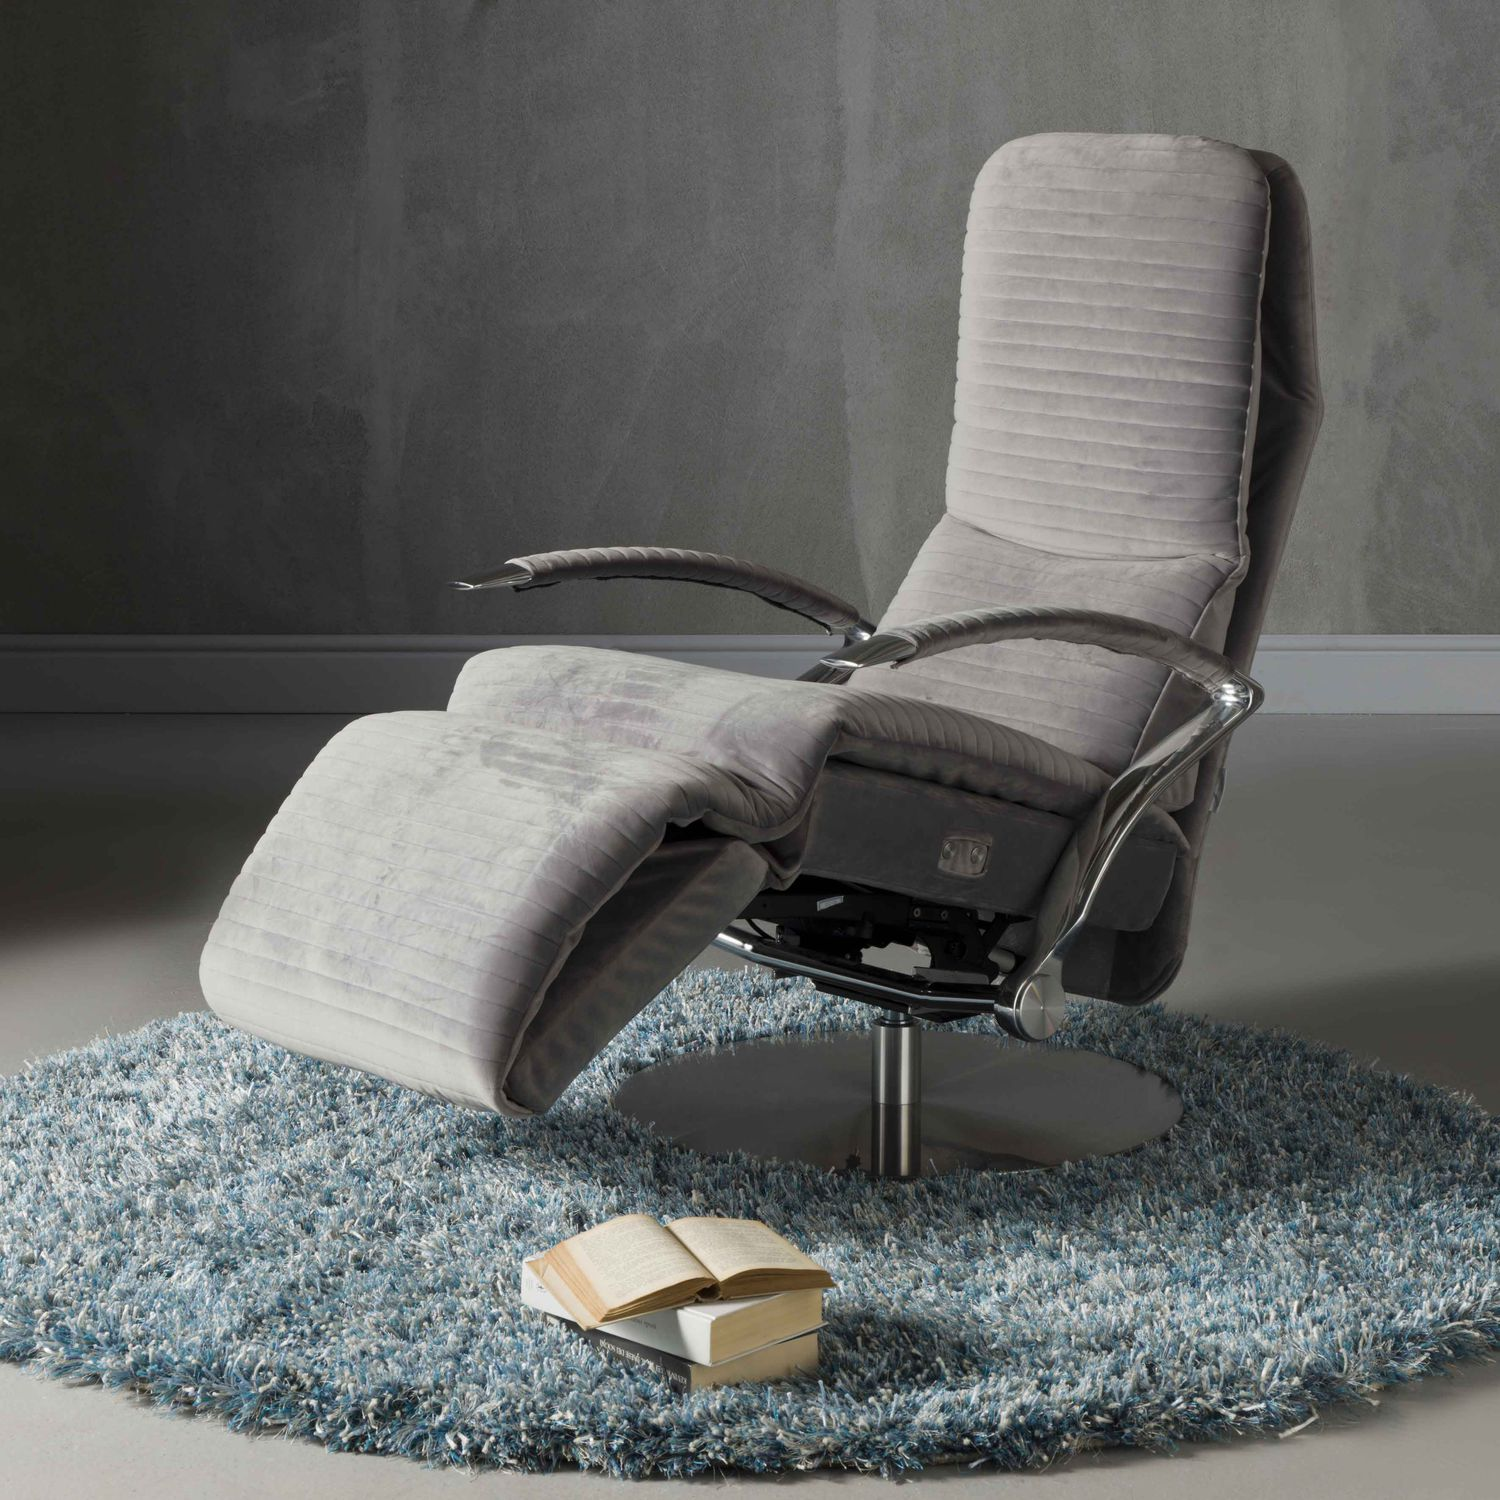 Divani Recliner Chair Contemporary Armchair Fabric Leather With Footrest Mila Divani Santambrogio